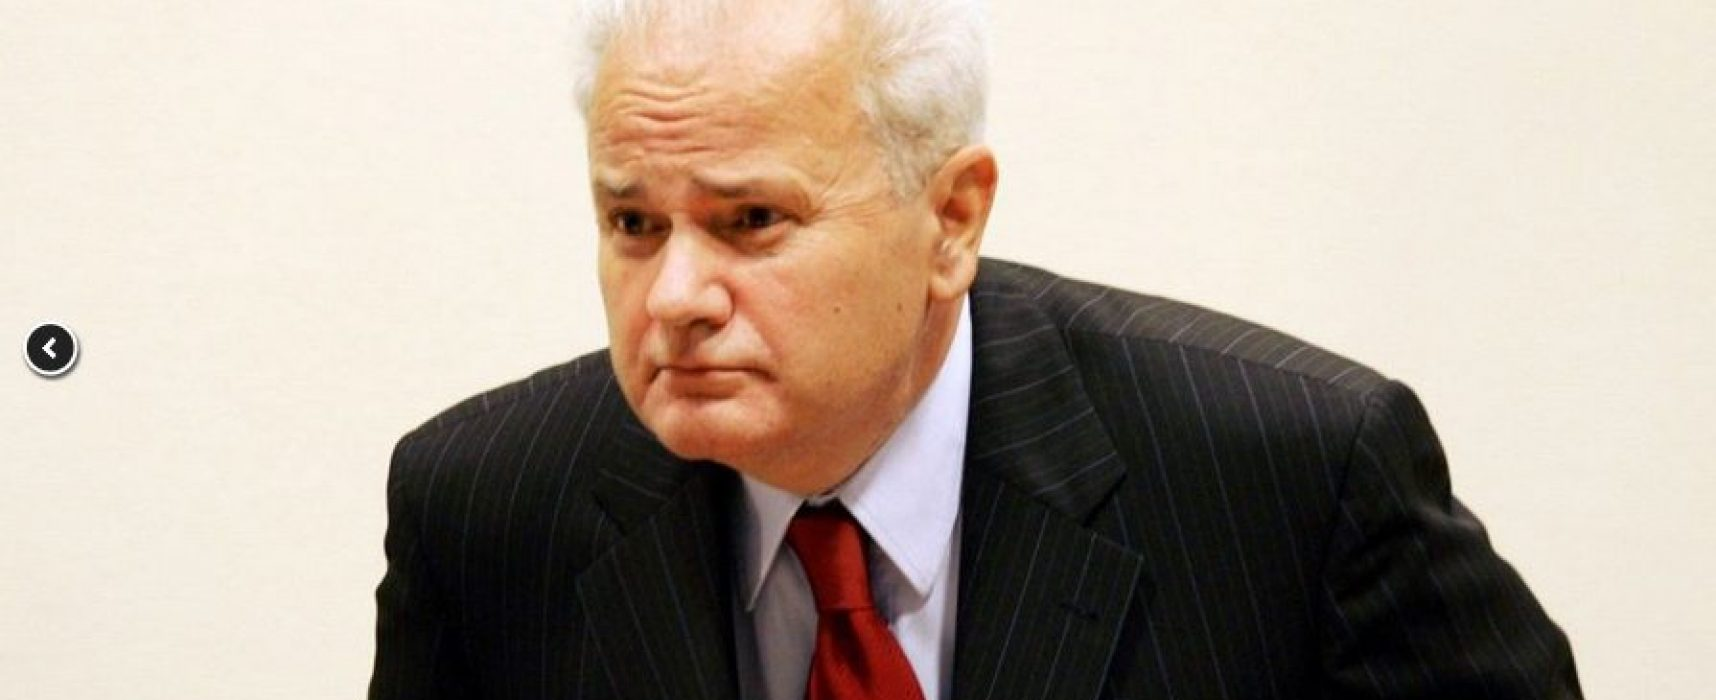 Milosevic 'Exonerated'? War-Crime Deniers Feed Receptive Audience